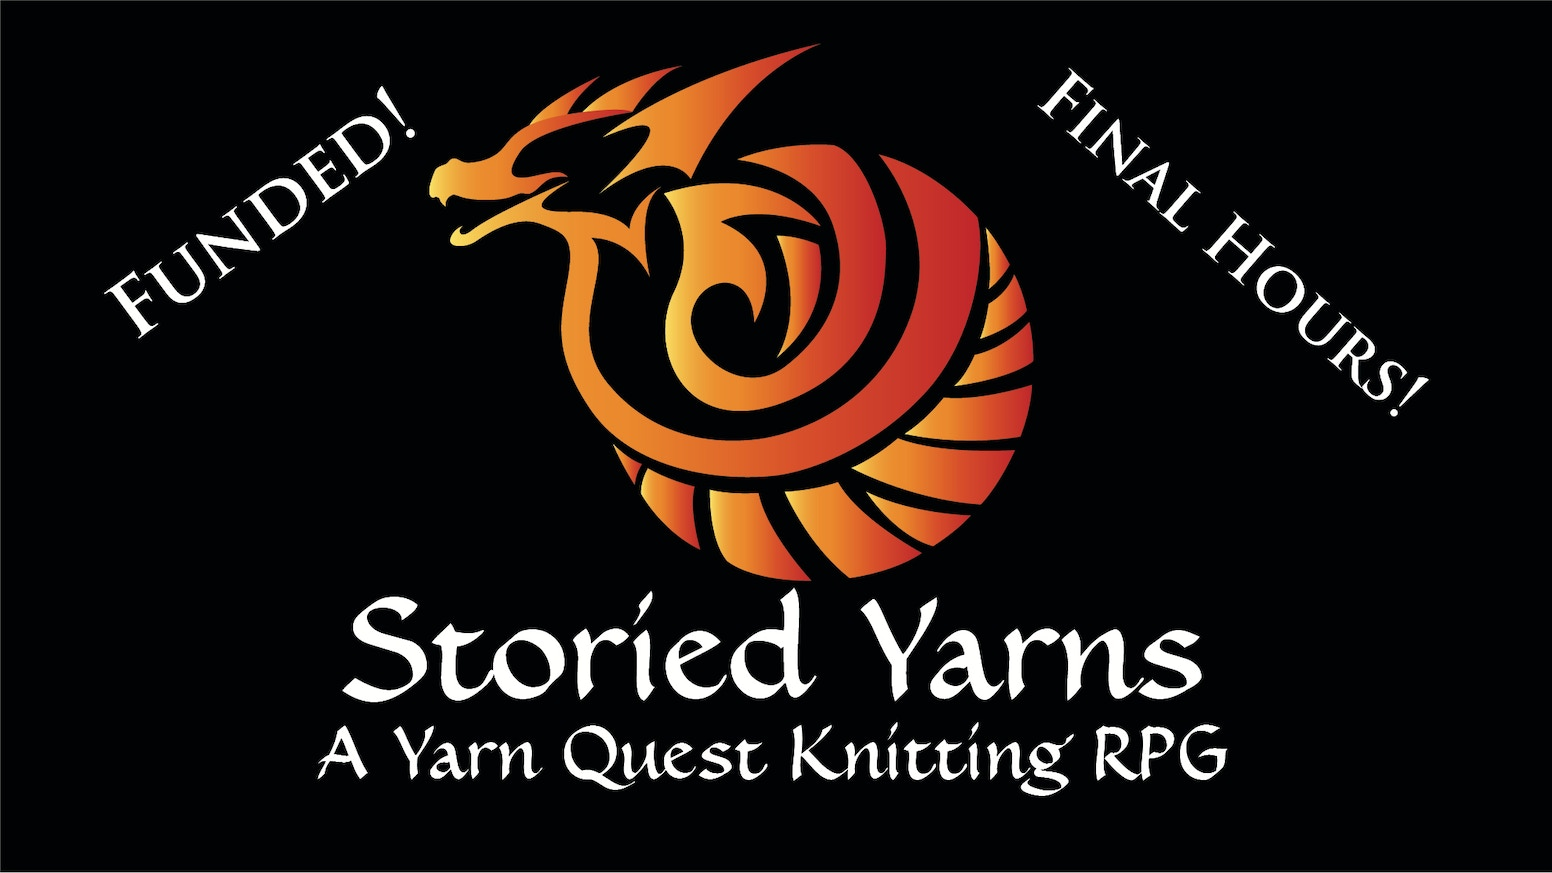 Welcome to Yarn Quest, where a grand knitting adventure awaits!